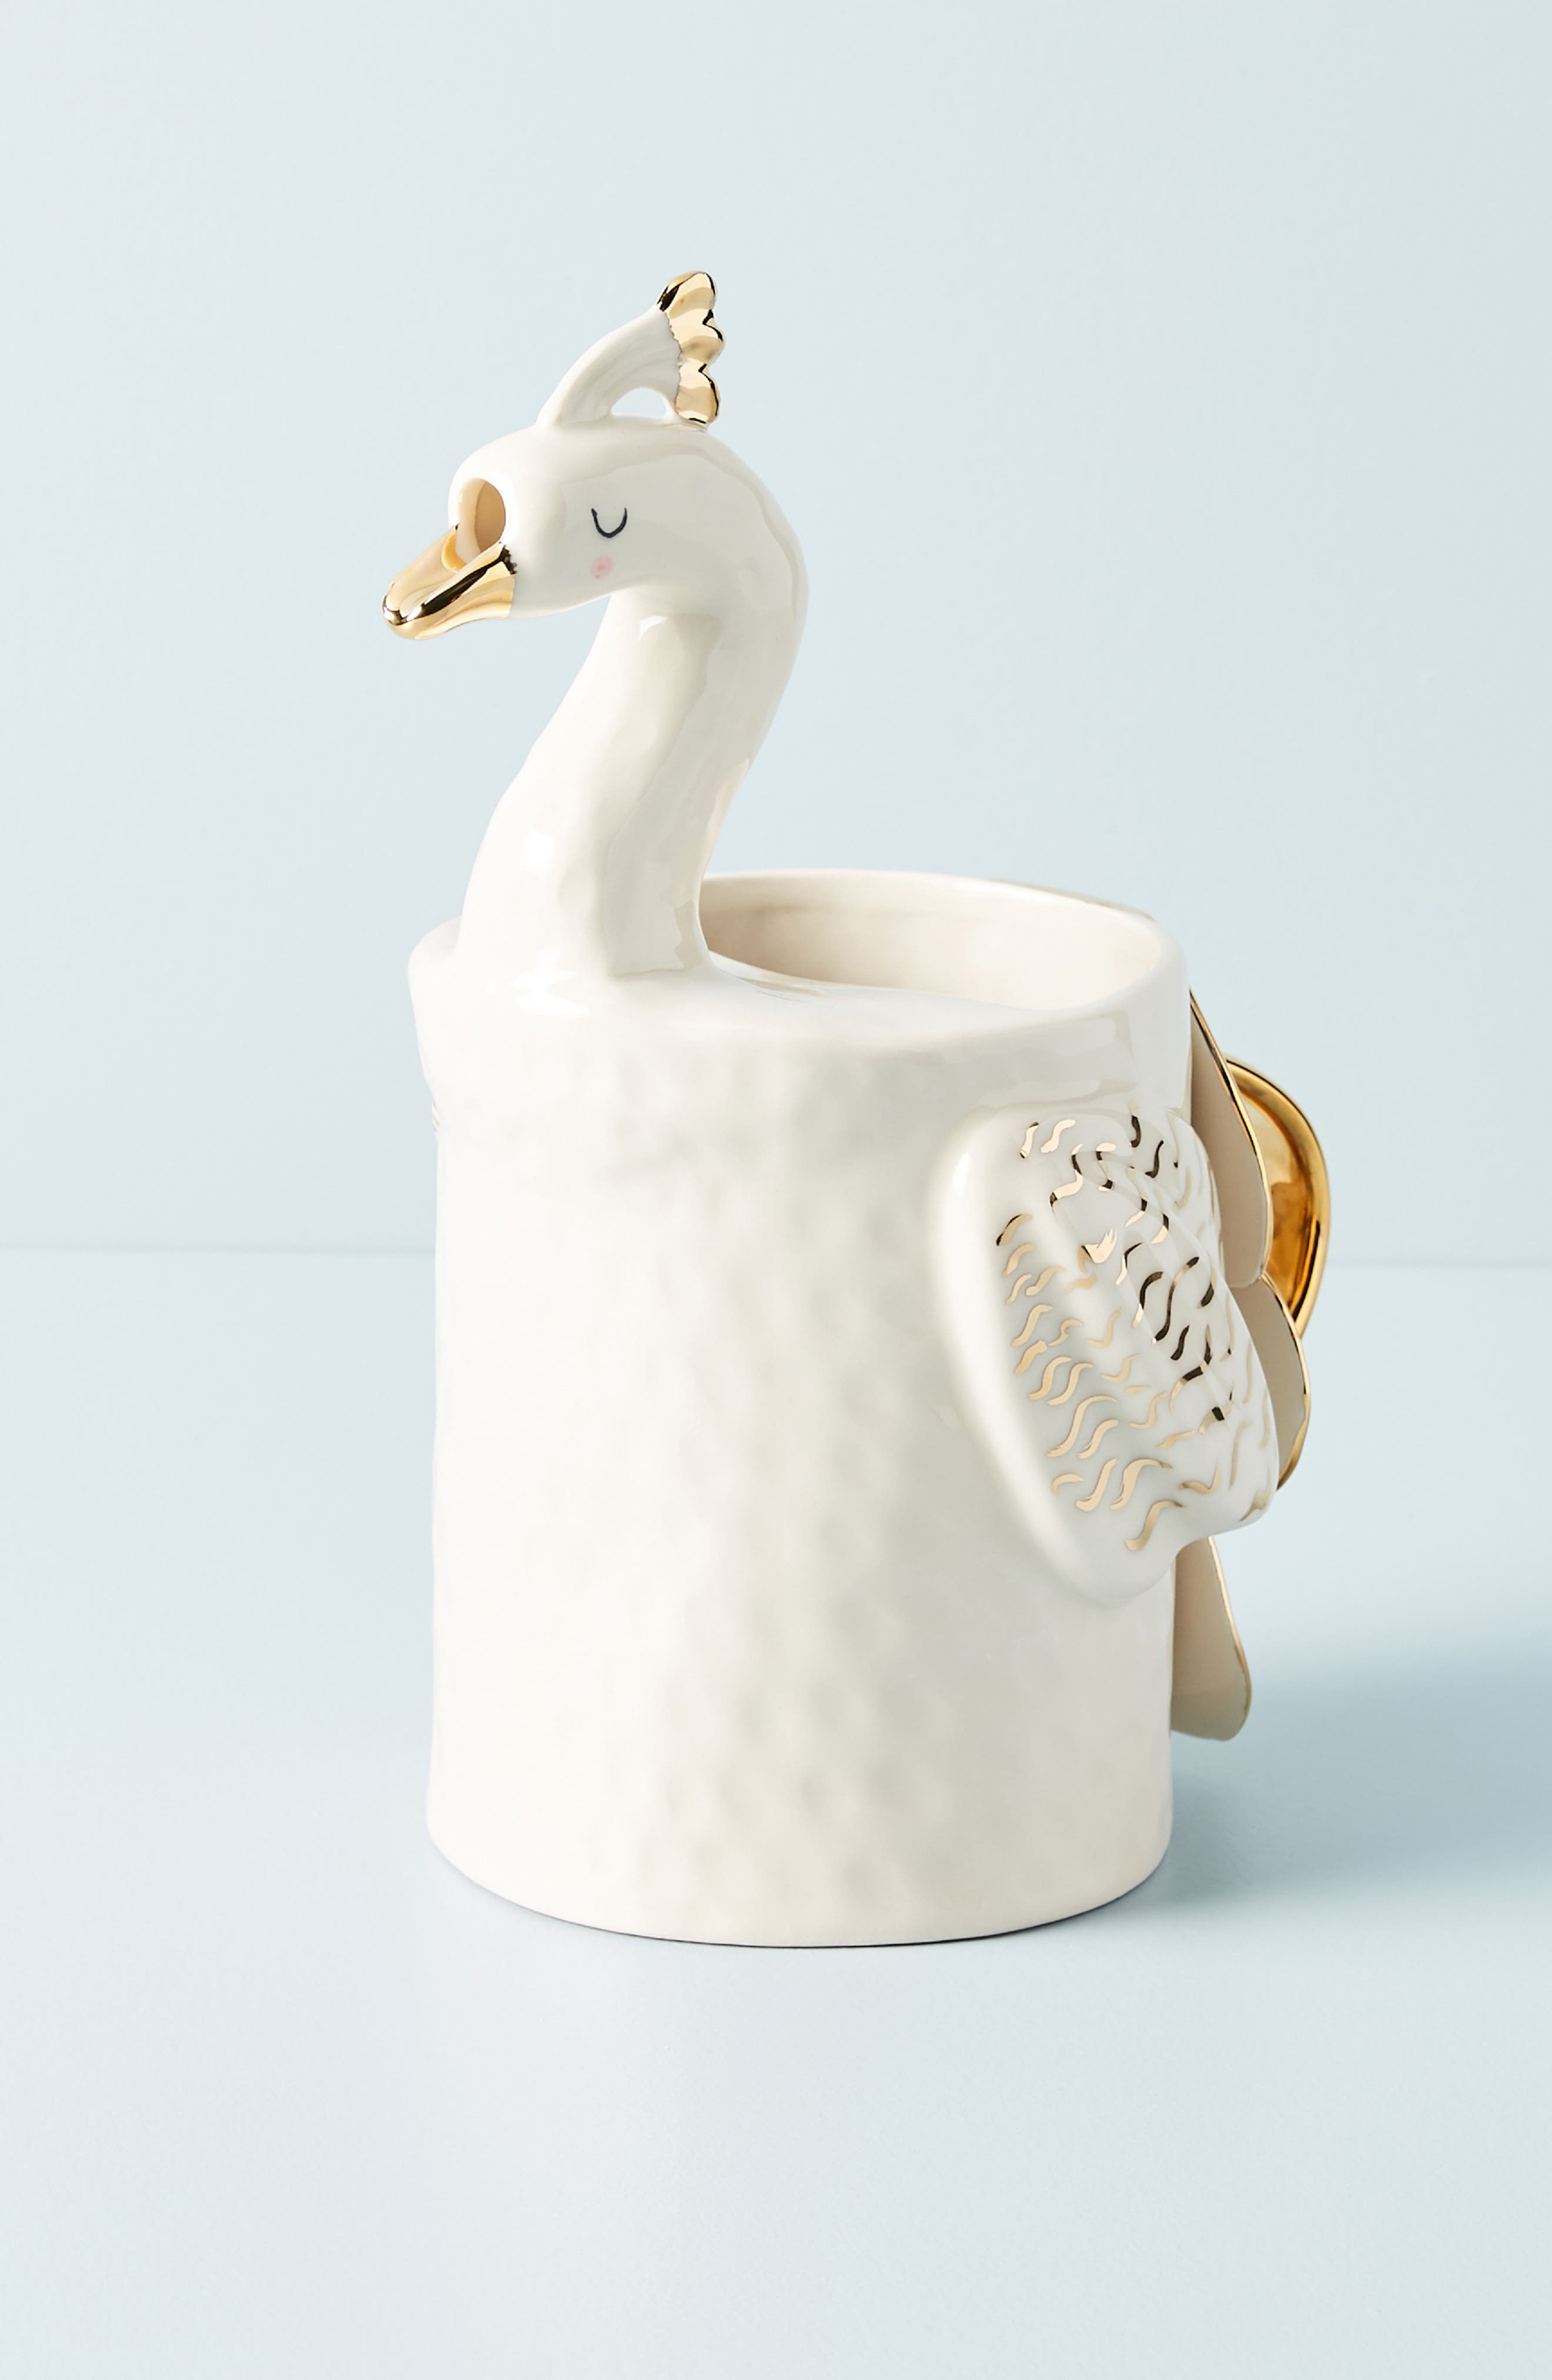 Fauna Fête Peacock Pitcher,                             Main thumbnail 1, color,                             WHITE/ GOLD